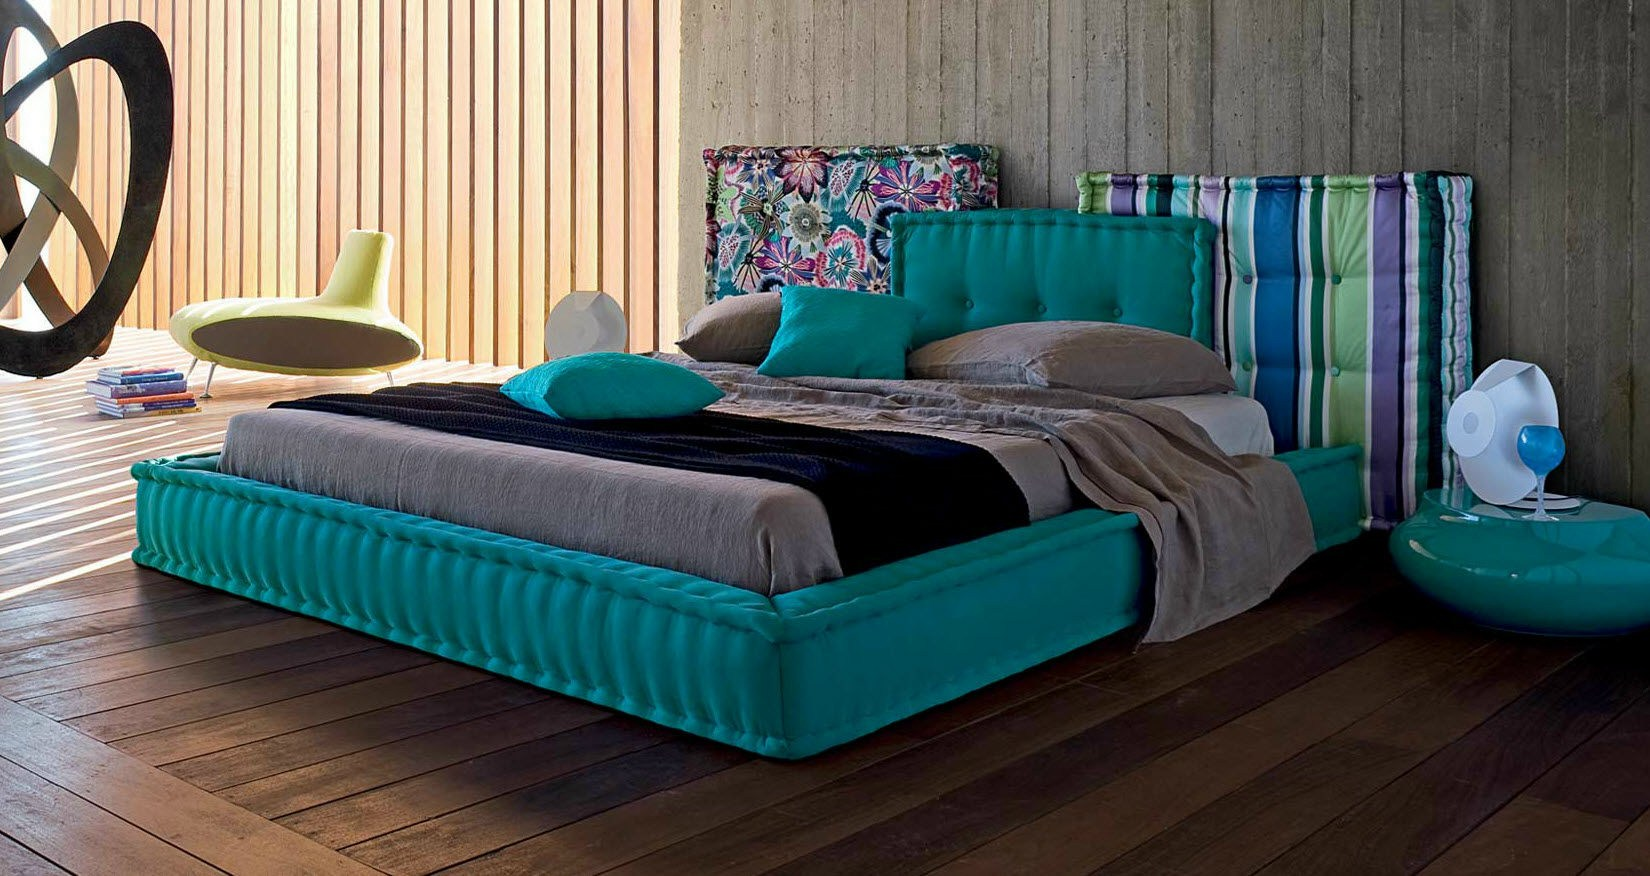 letto matrimoniale con testiera imbottita mah jong collezione les contemporains by roche bobois. Black Bedroom Furniture Sets. Home Design Ideas